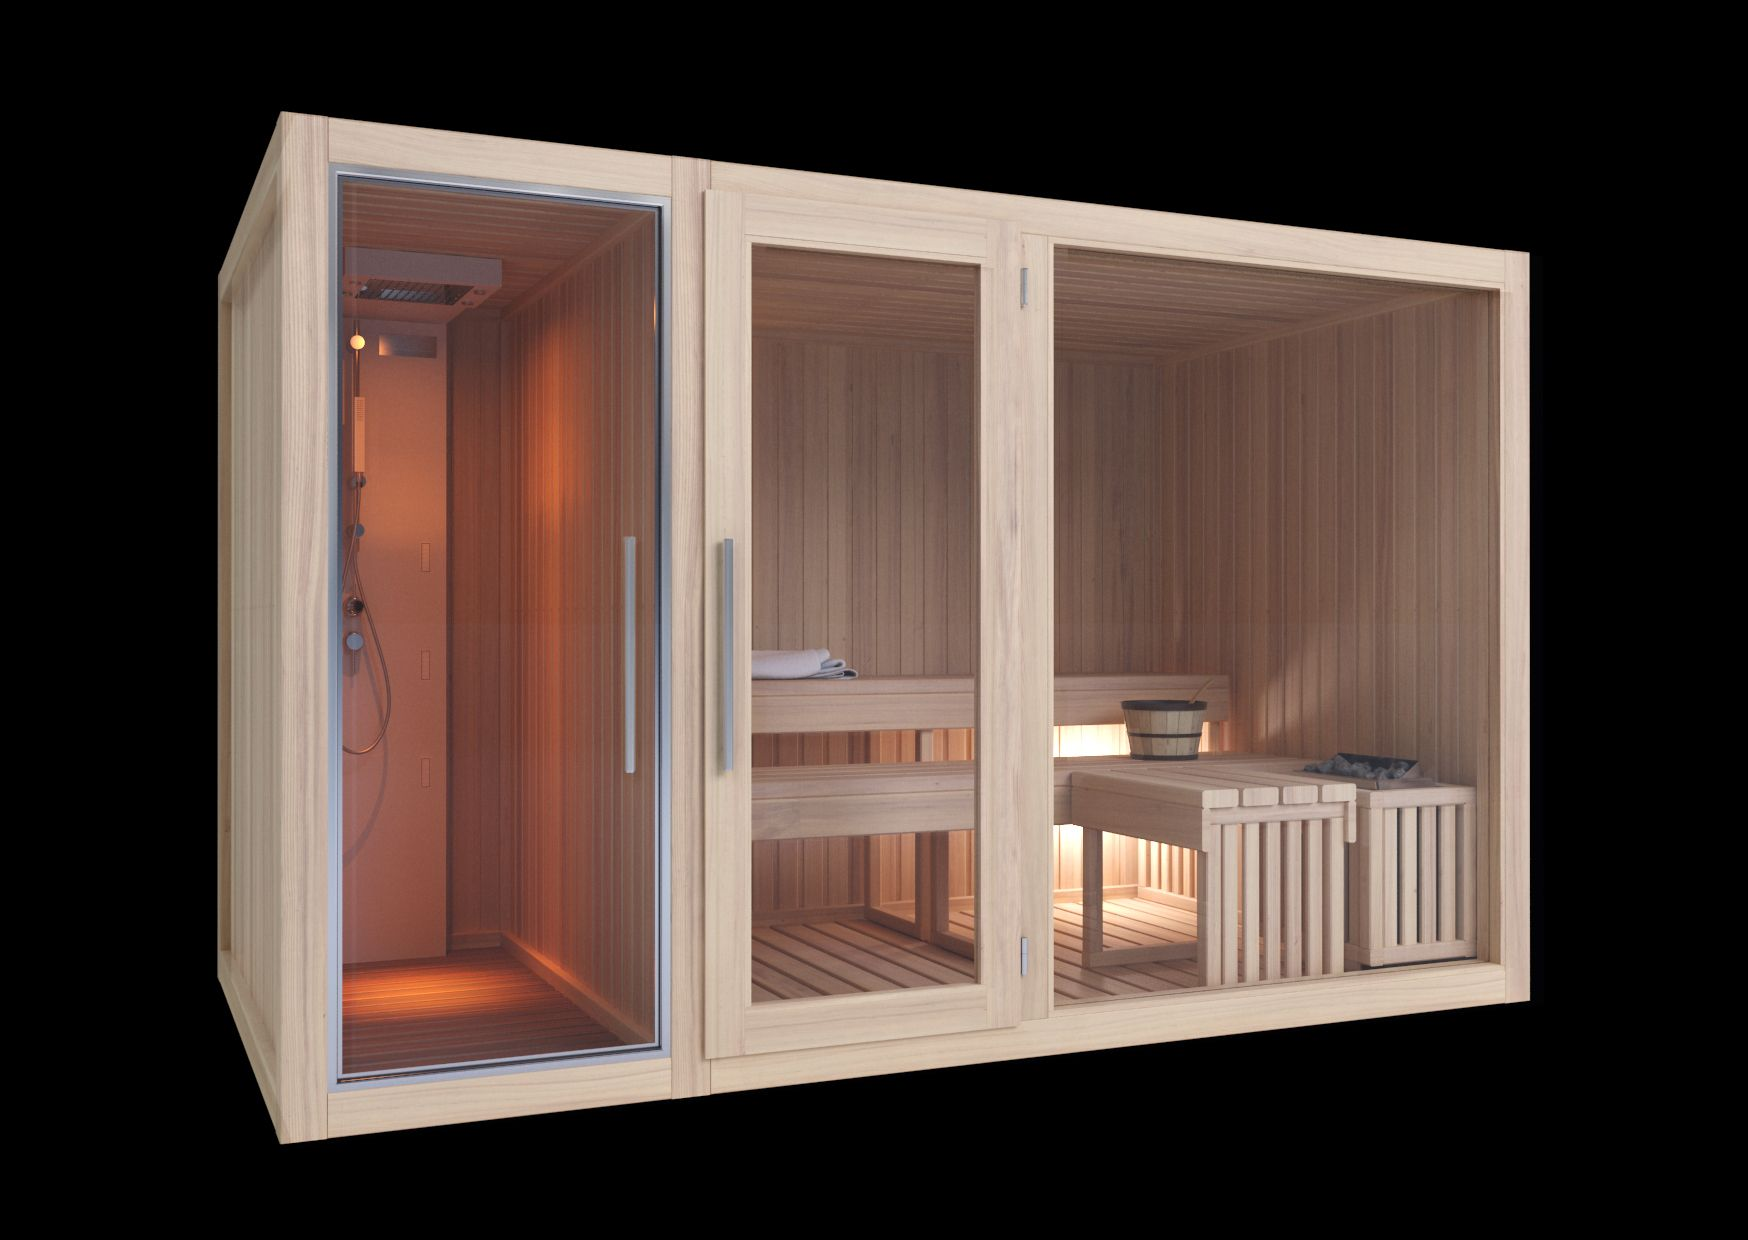 modelli sauna finlandese e sauna con bagno turco hammam in. Black Bedroom Furniture Sets. Home Design Ideas